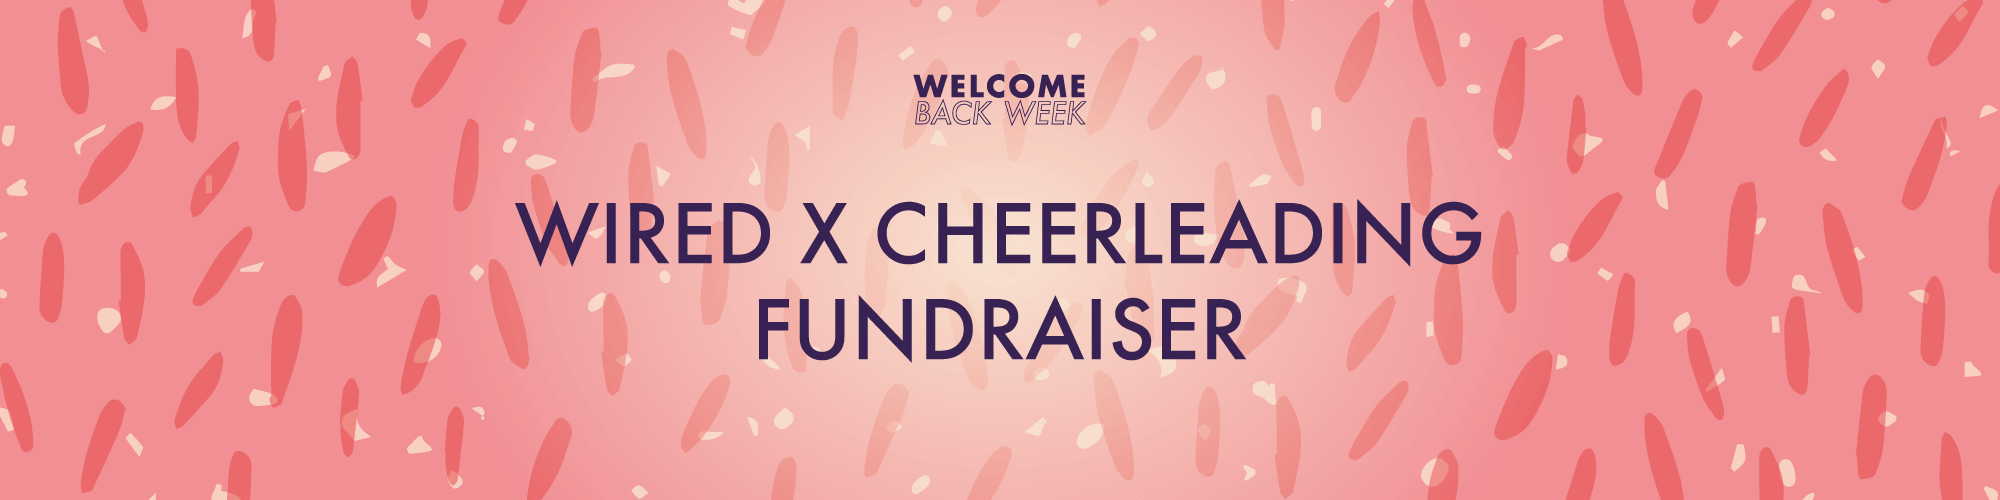 Wired x Cheerleading Fundraiser